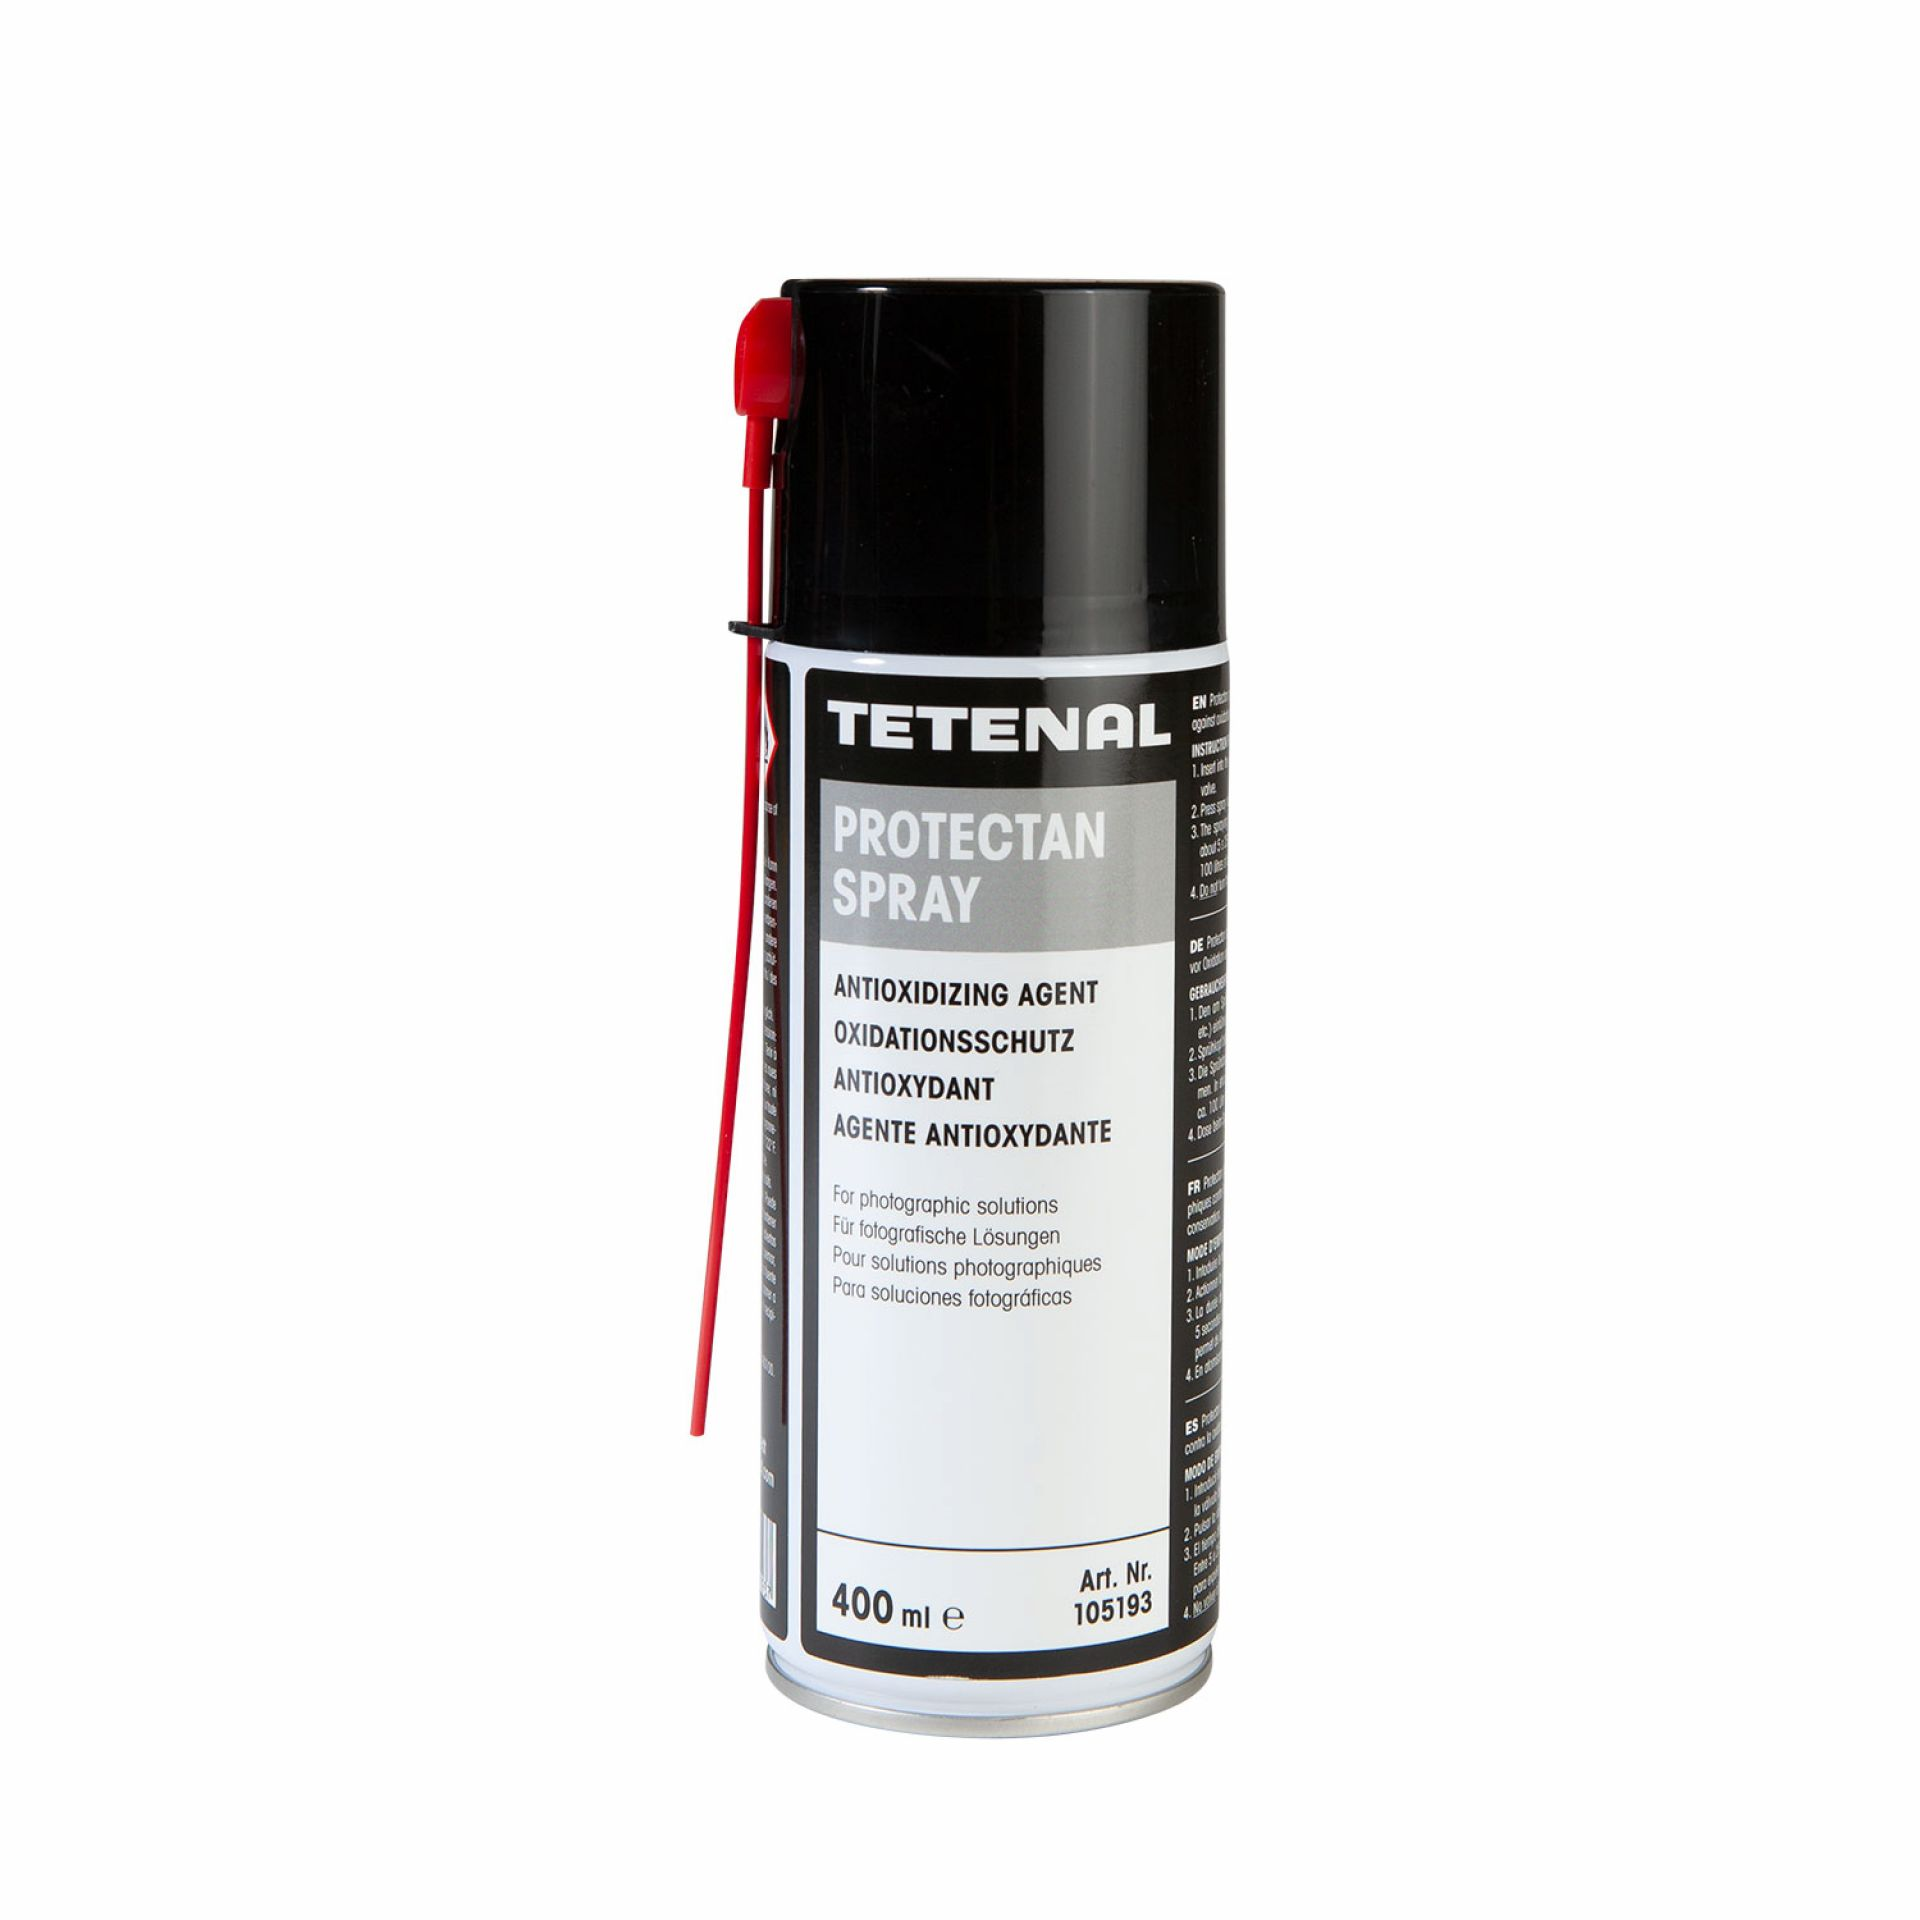 Tetenal Protectan Spray 400 ml